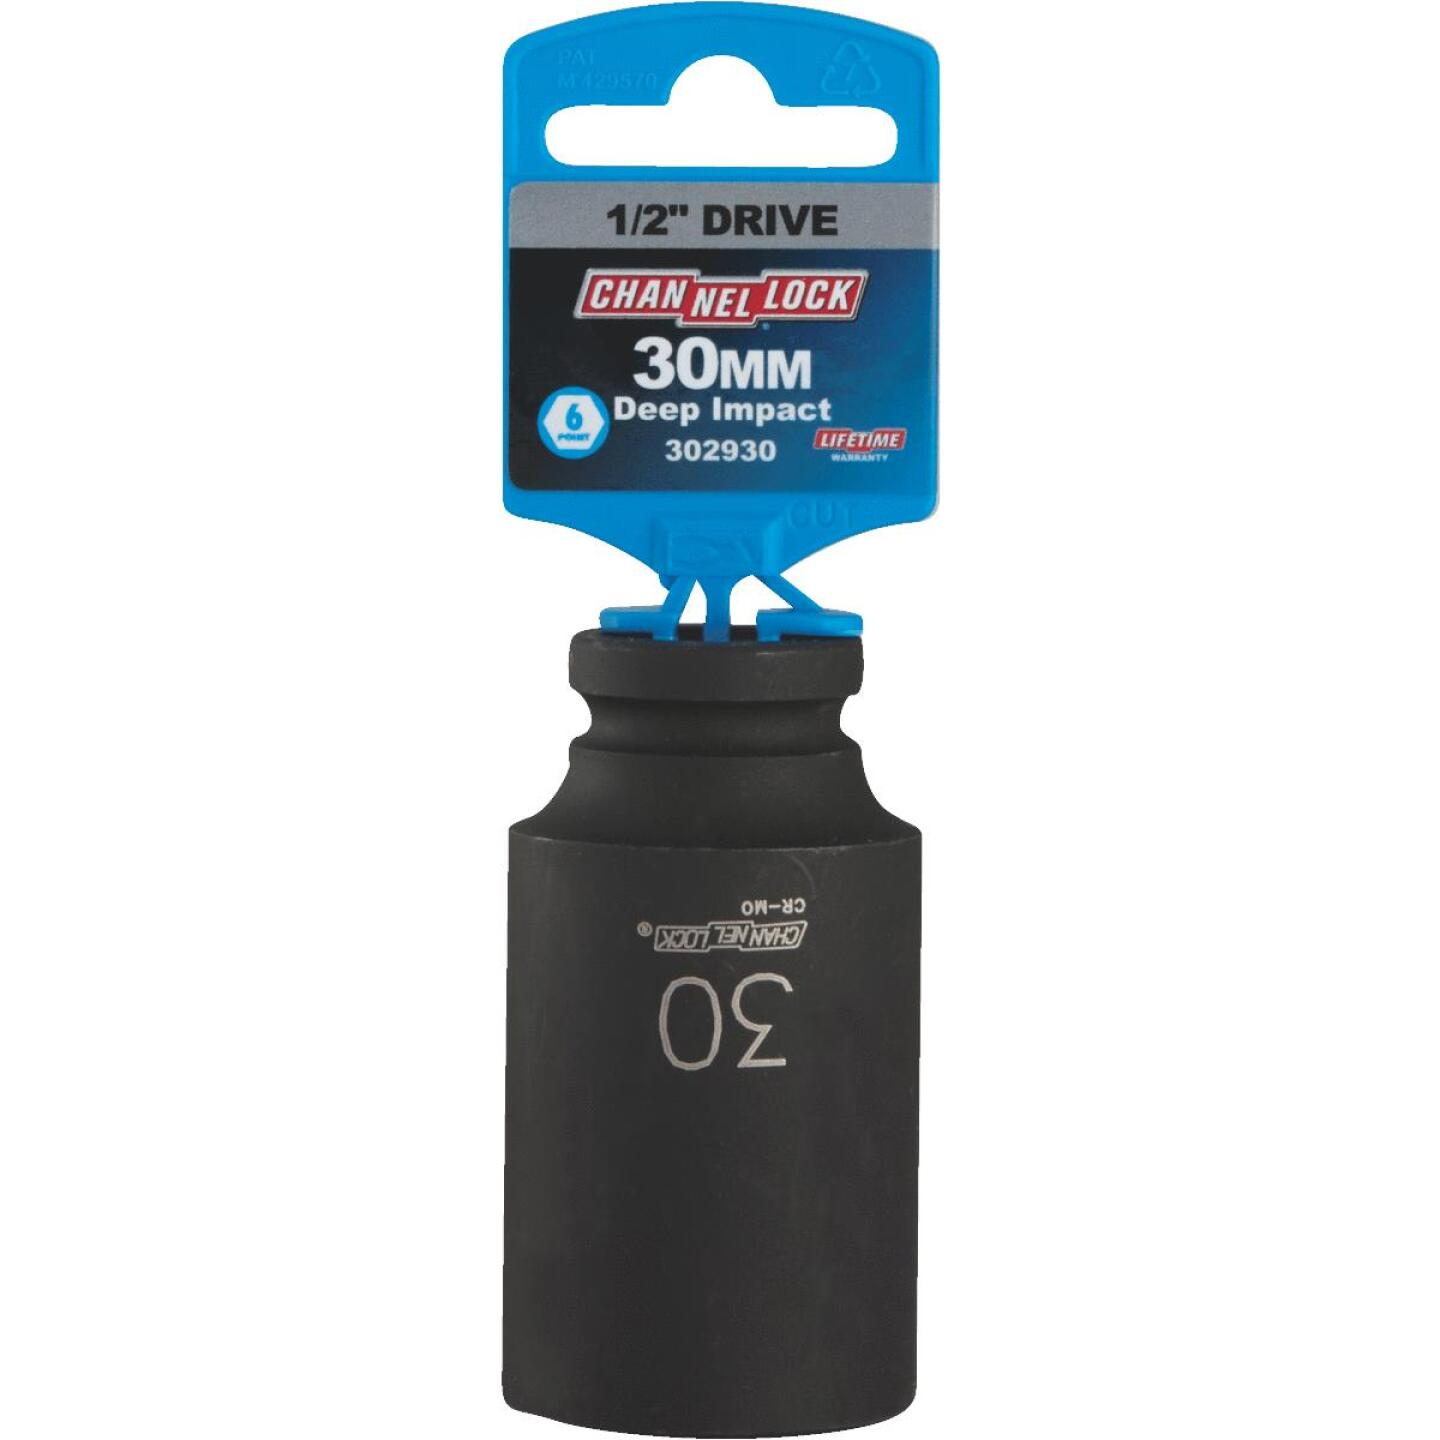 Channellock 1/2 In. Drive 30 mm 6-Point Deep Metric Impact Socket Image 2